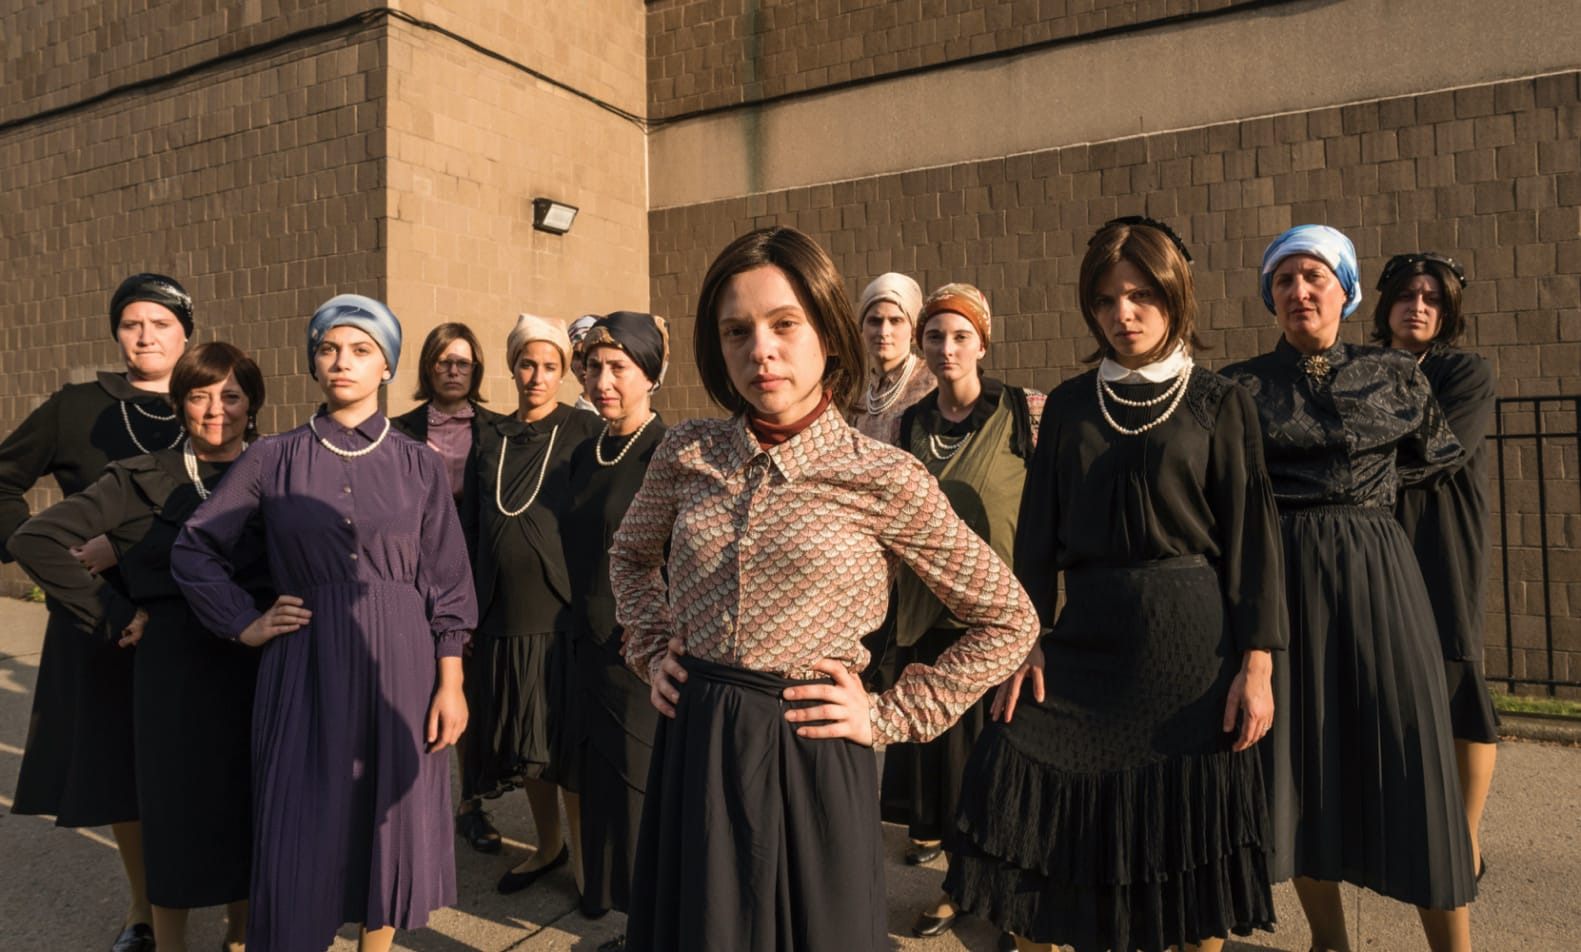 Shira Haas and her fellow Unorthodox actresses